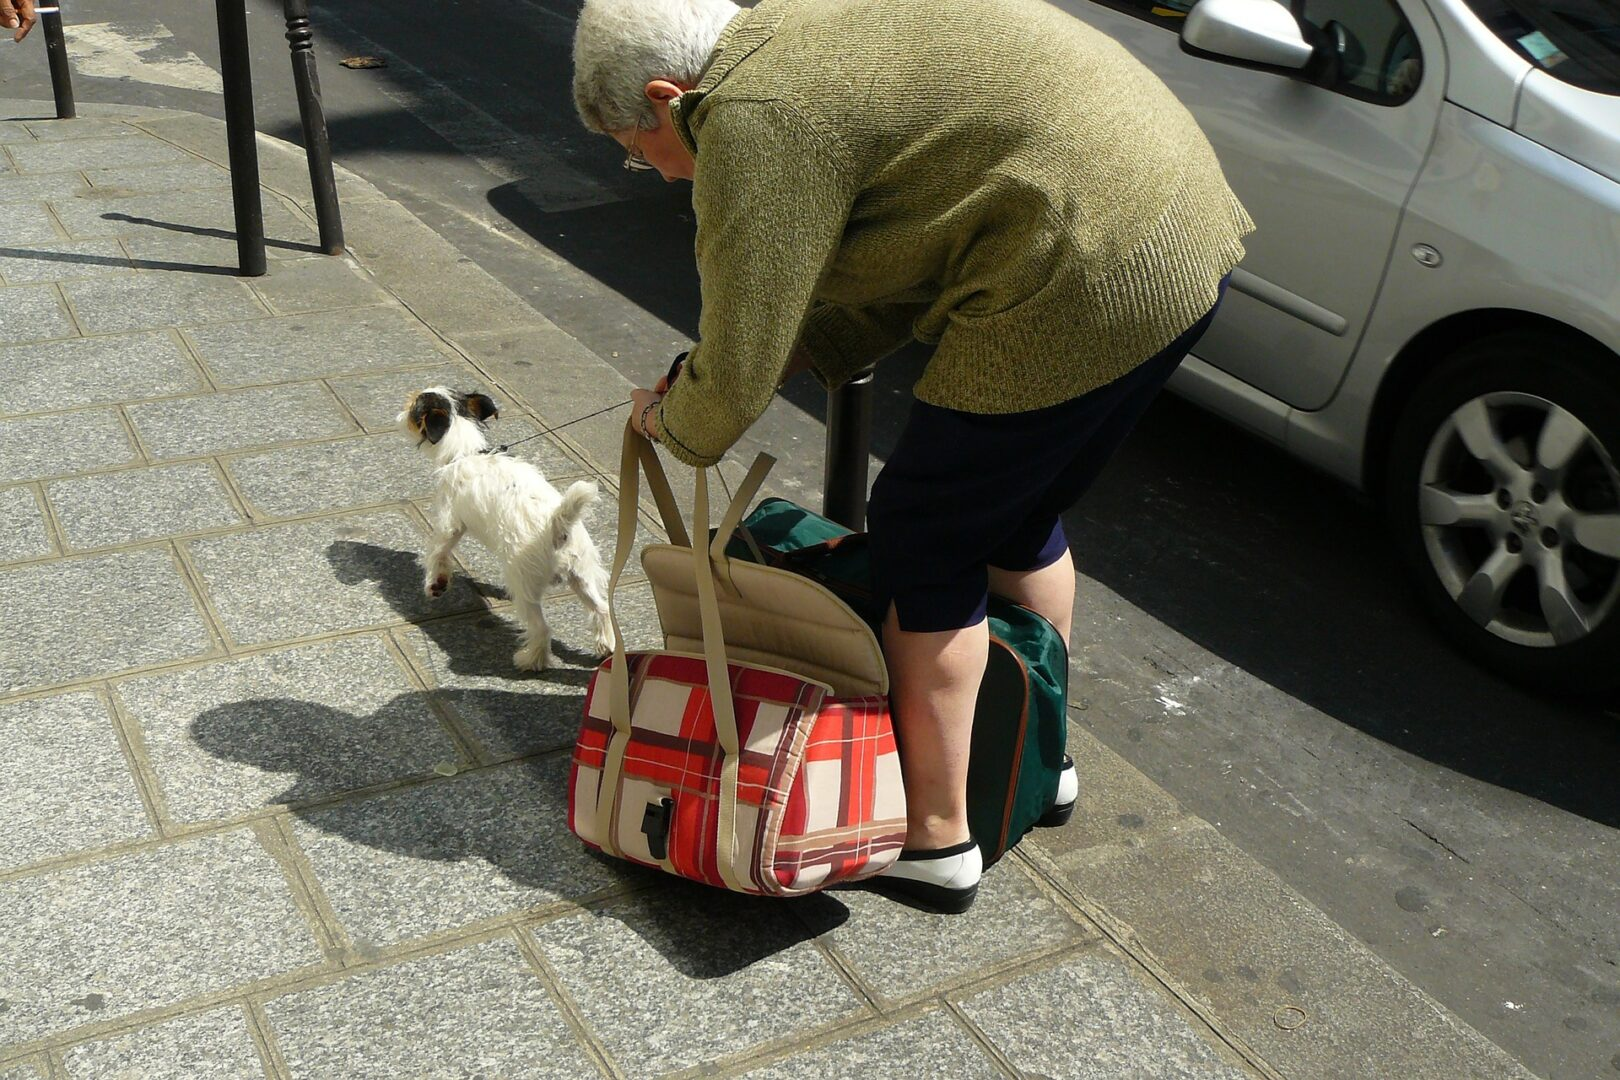 Older woman stooped over picking up bags with a small dog